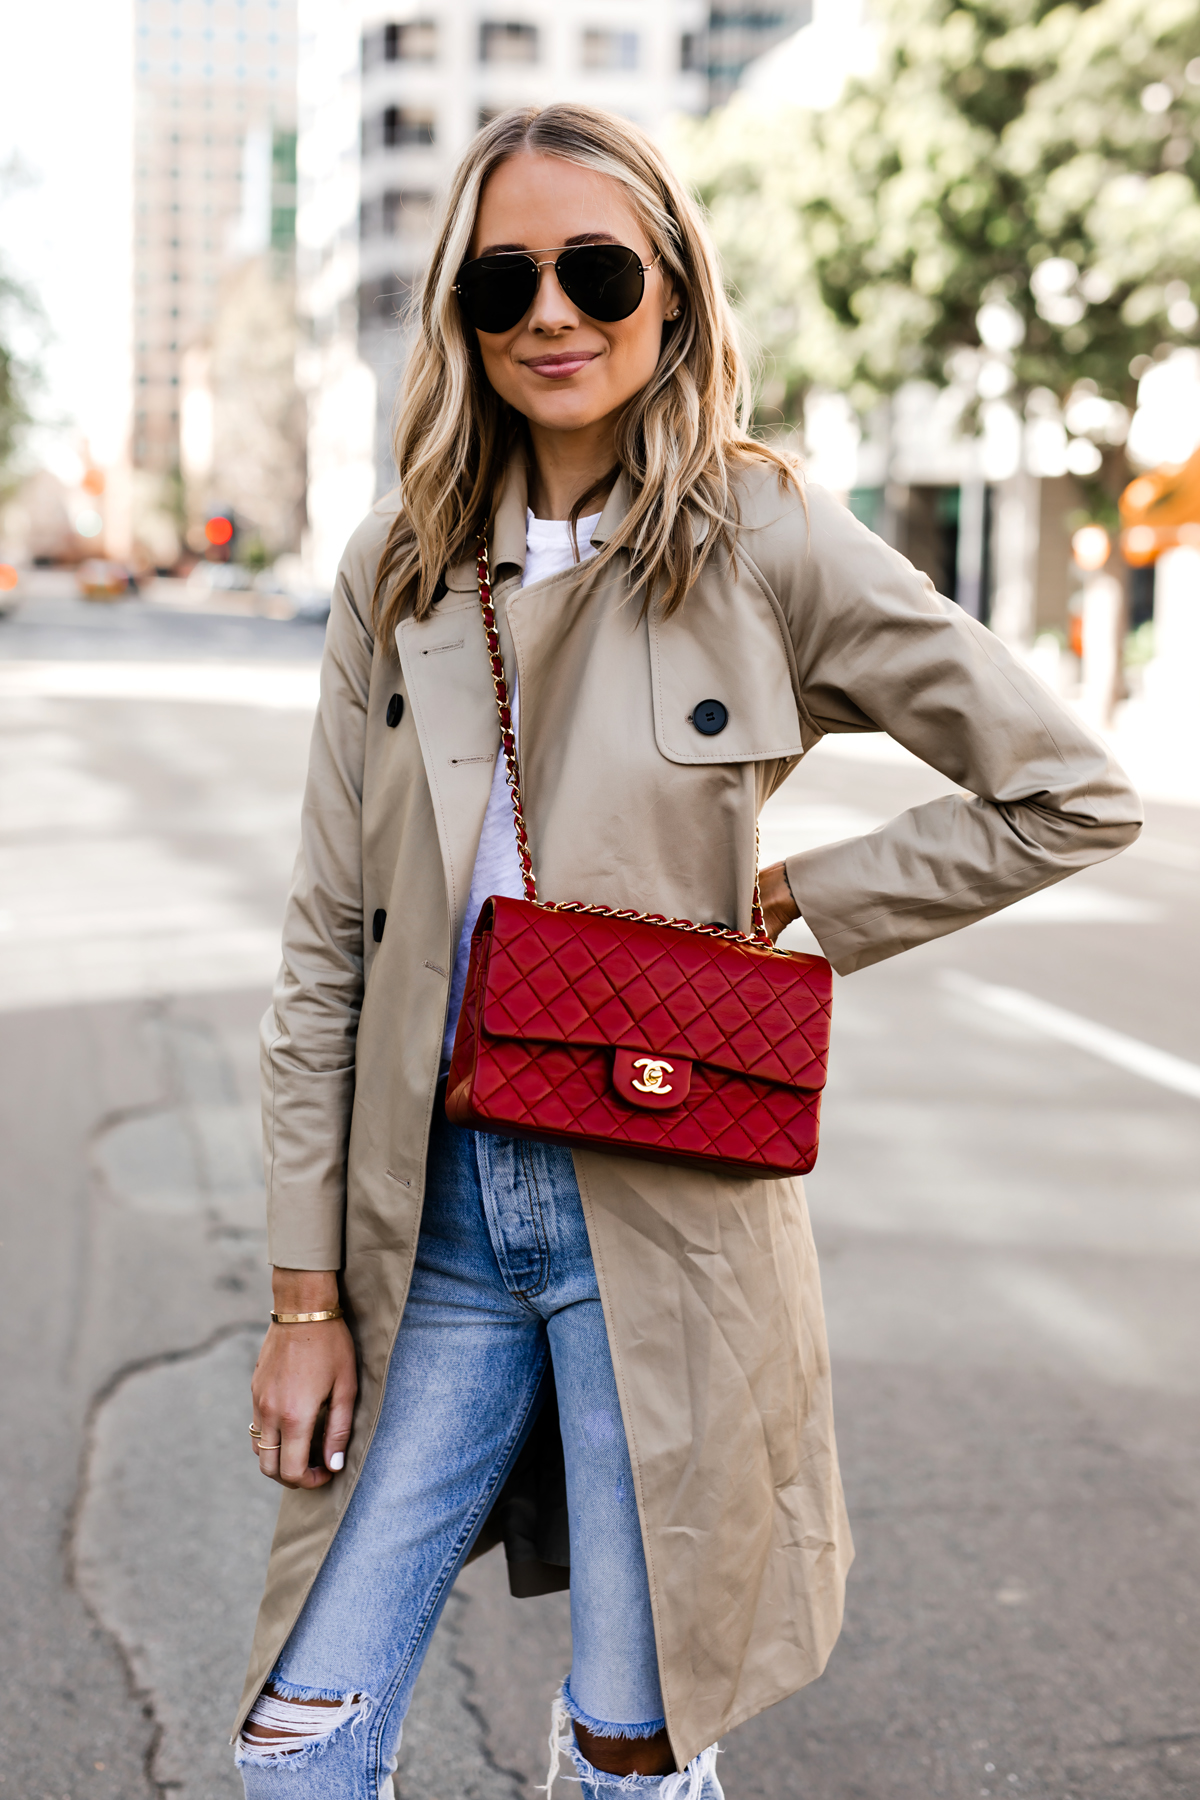 Blonde Woman Wearing Everlane Trench Coat Red Chanel Handbag Ripped Jeans Fashion Jackson San Diego Fashion Blogger Street Style